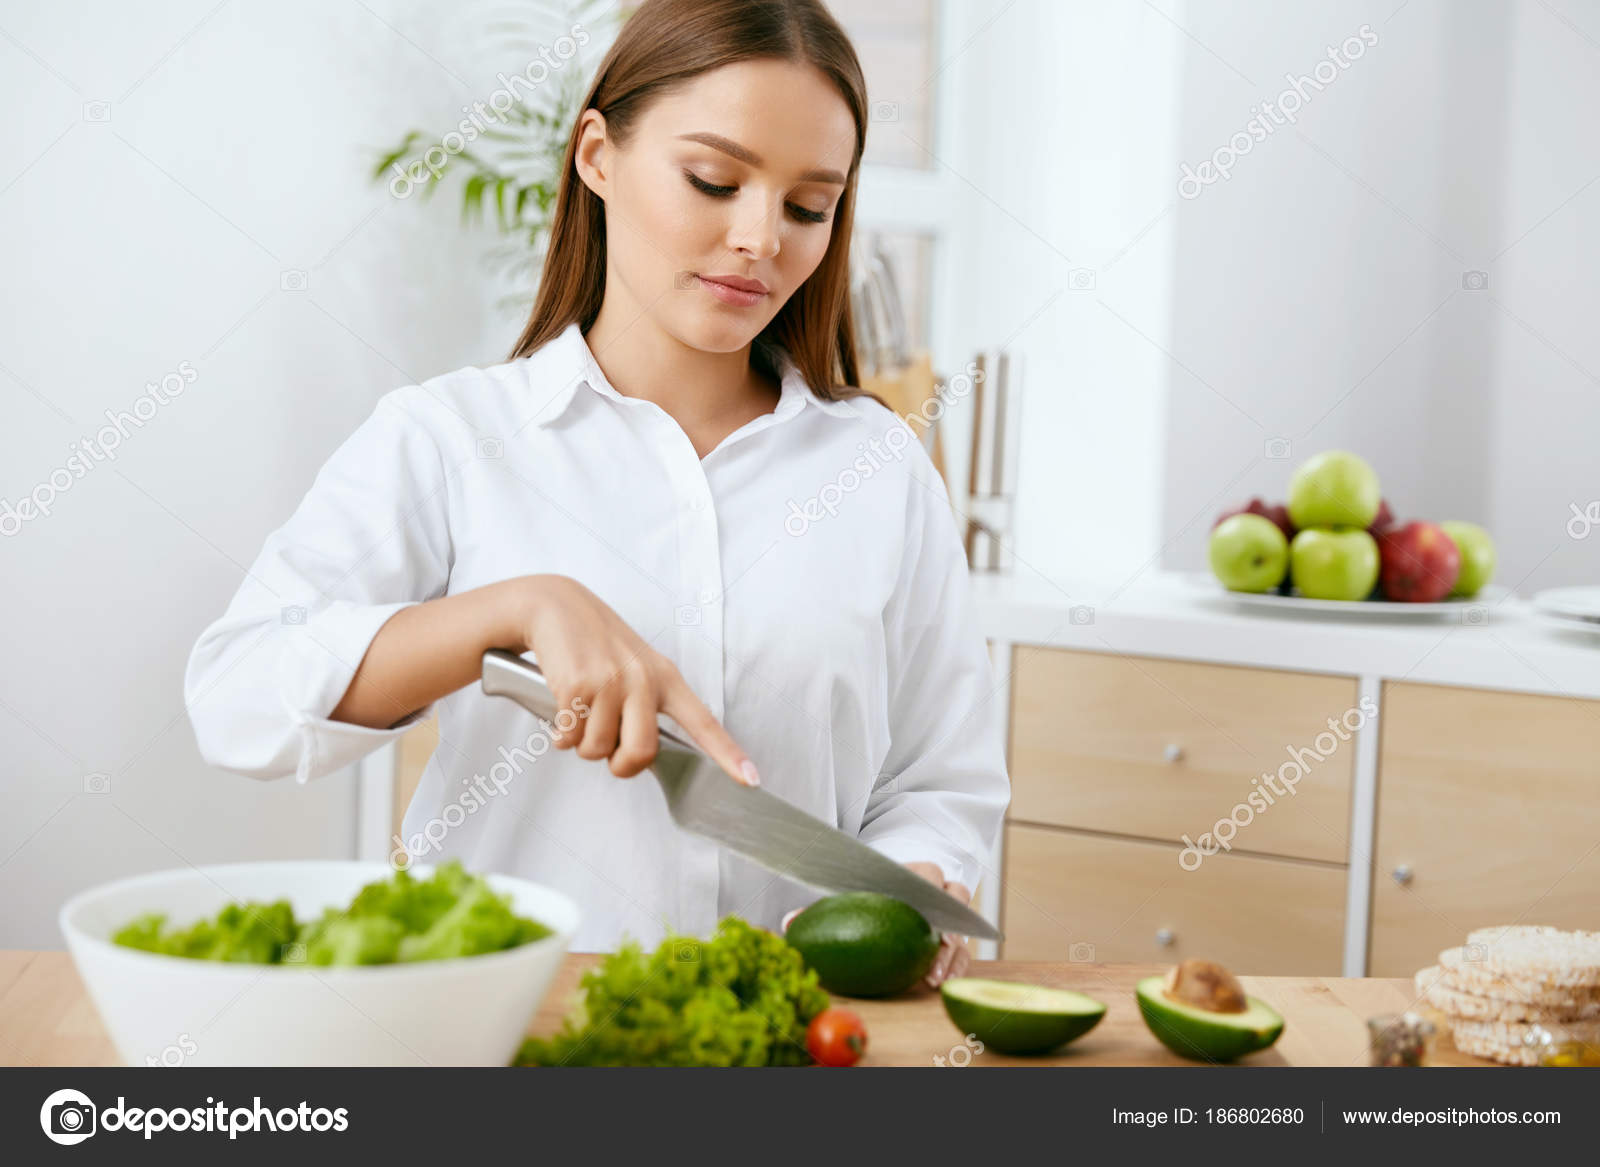 Nutrition. Woman Cooking Healthy Food In Kitchen. — Stock Photo ...